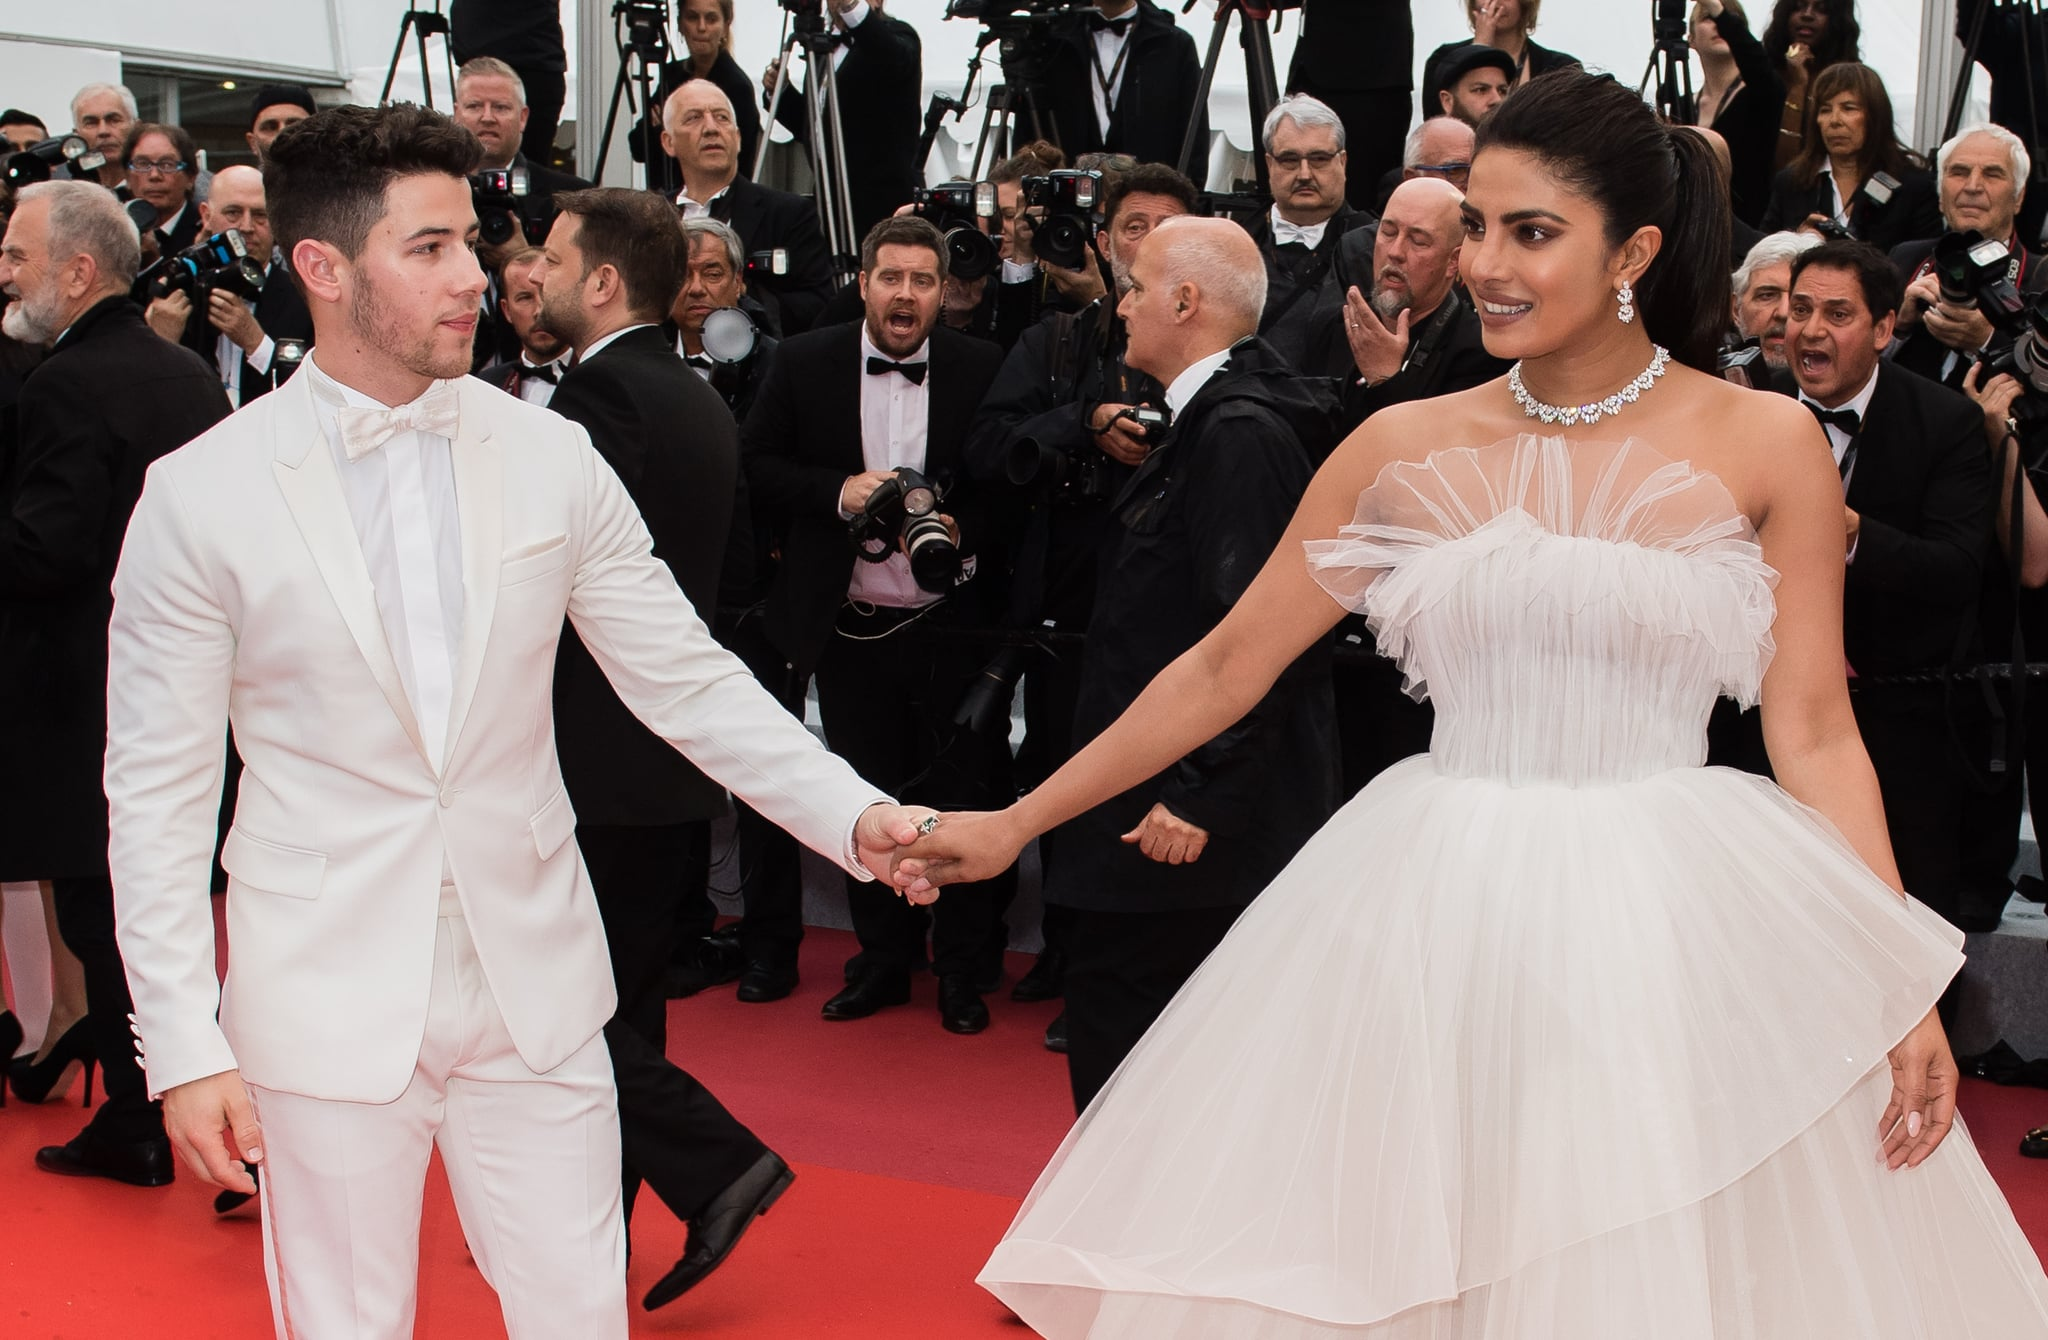 CANNES, FRANCE - MAY 18: Actress Priyanka Chopra and her husband Nick Jonas  attend the screening of